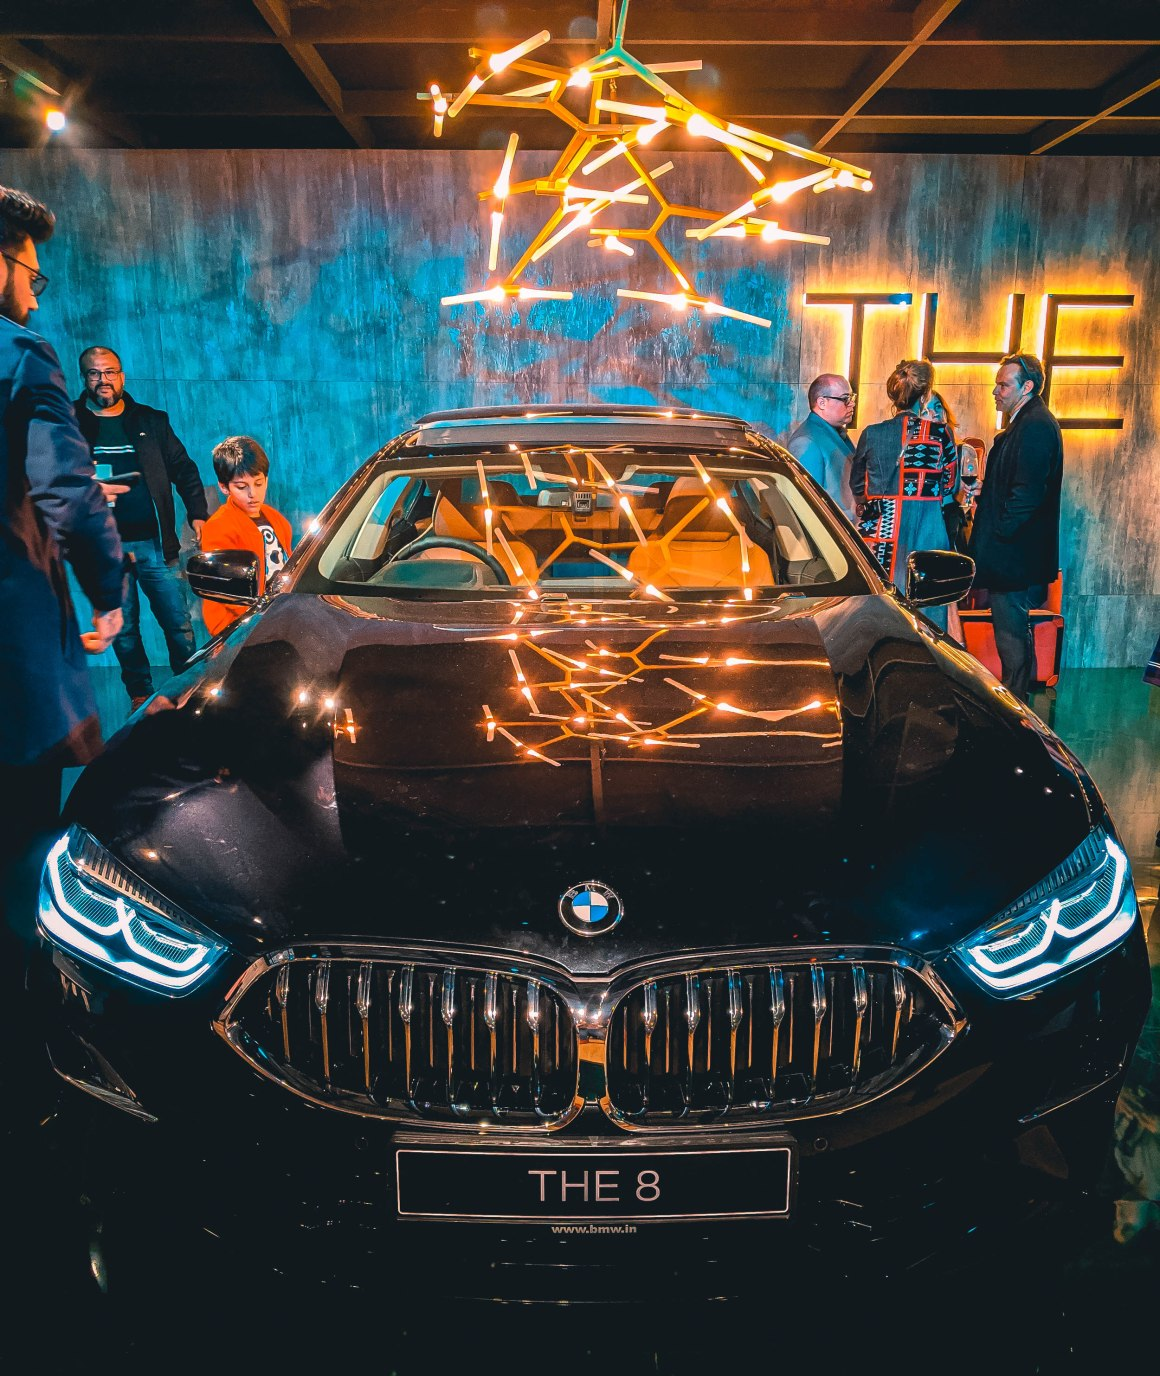 bmw, eyesforluxury, automobiles, automobile brand, bayerische motoren werke ag, german company, german automobile, bmw 8 series gran coupe, the8, luxury grand tourer, four door, thegentlemanconnoisseur, nainaxbmw, india art fair, bmw at the india art fair, bmwatiaf, indiaartfair2020, new delhi, lifestyle photographer, luxury photographer, car, automobile photographer, art photographer, art fair, naina redhu, naina, naina.co